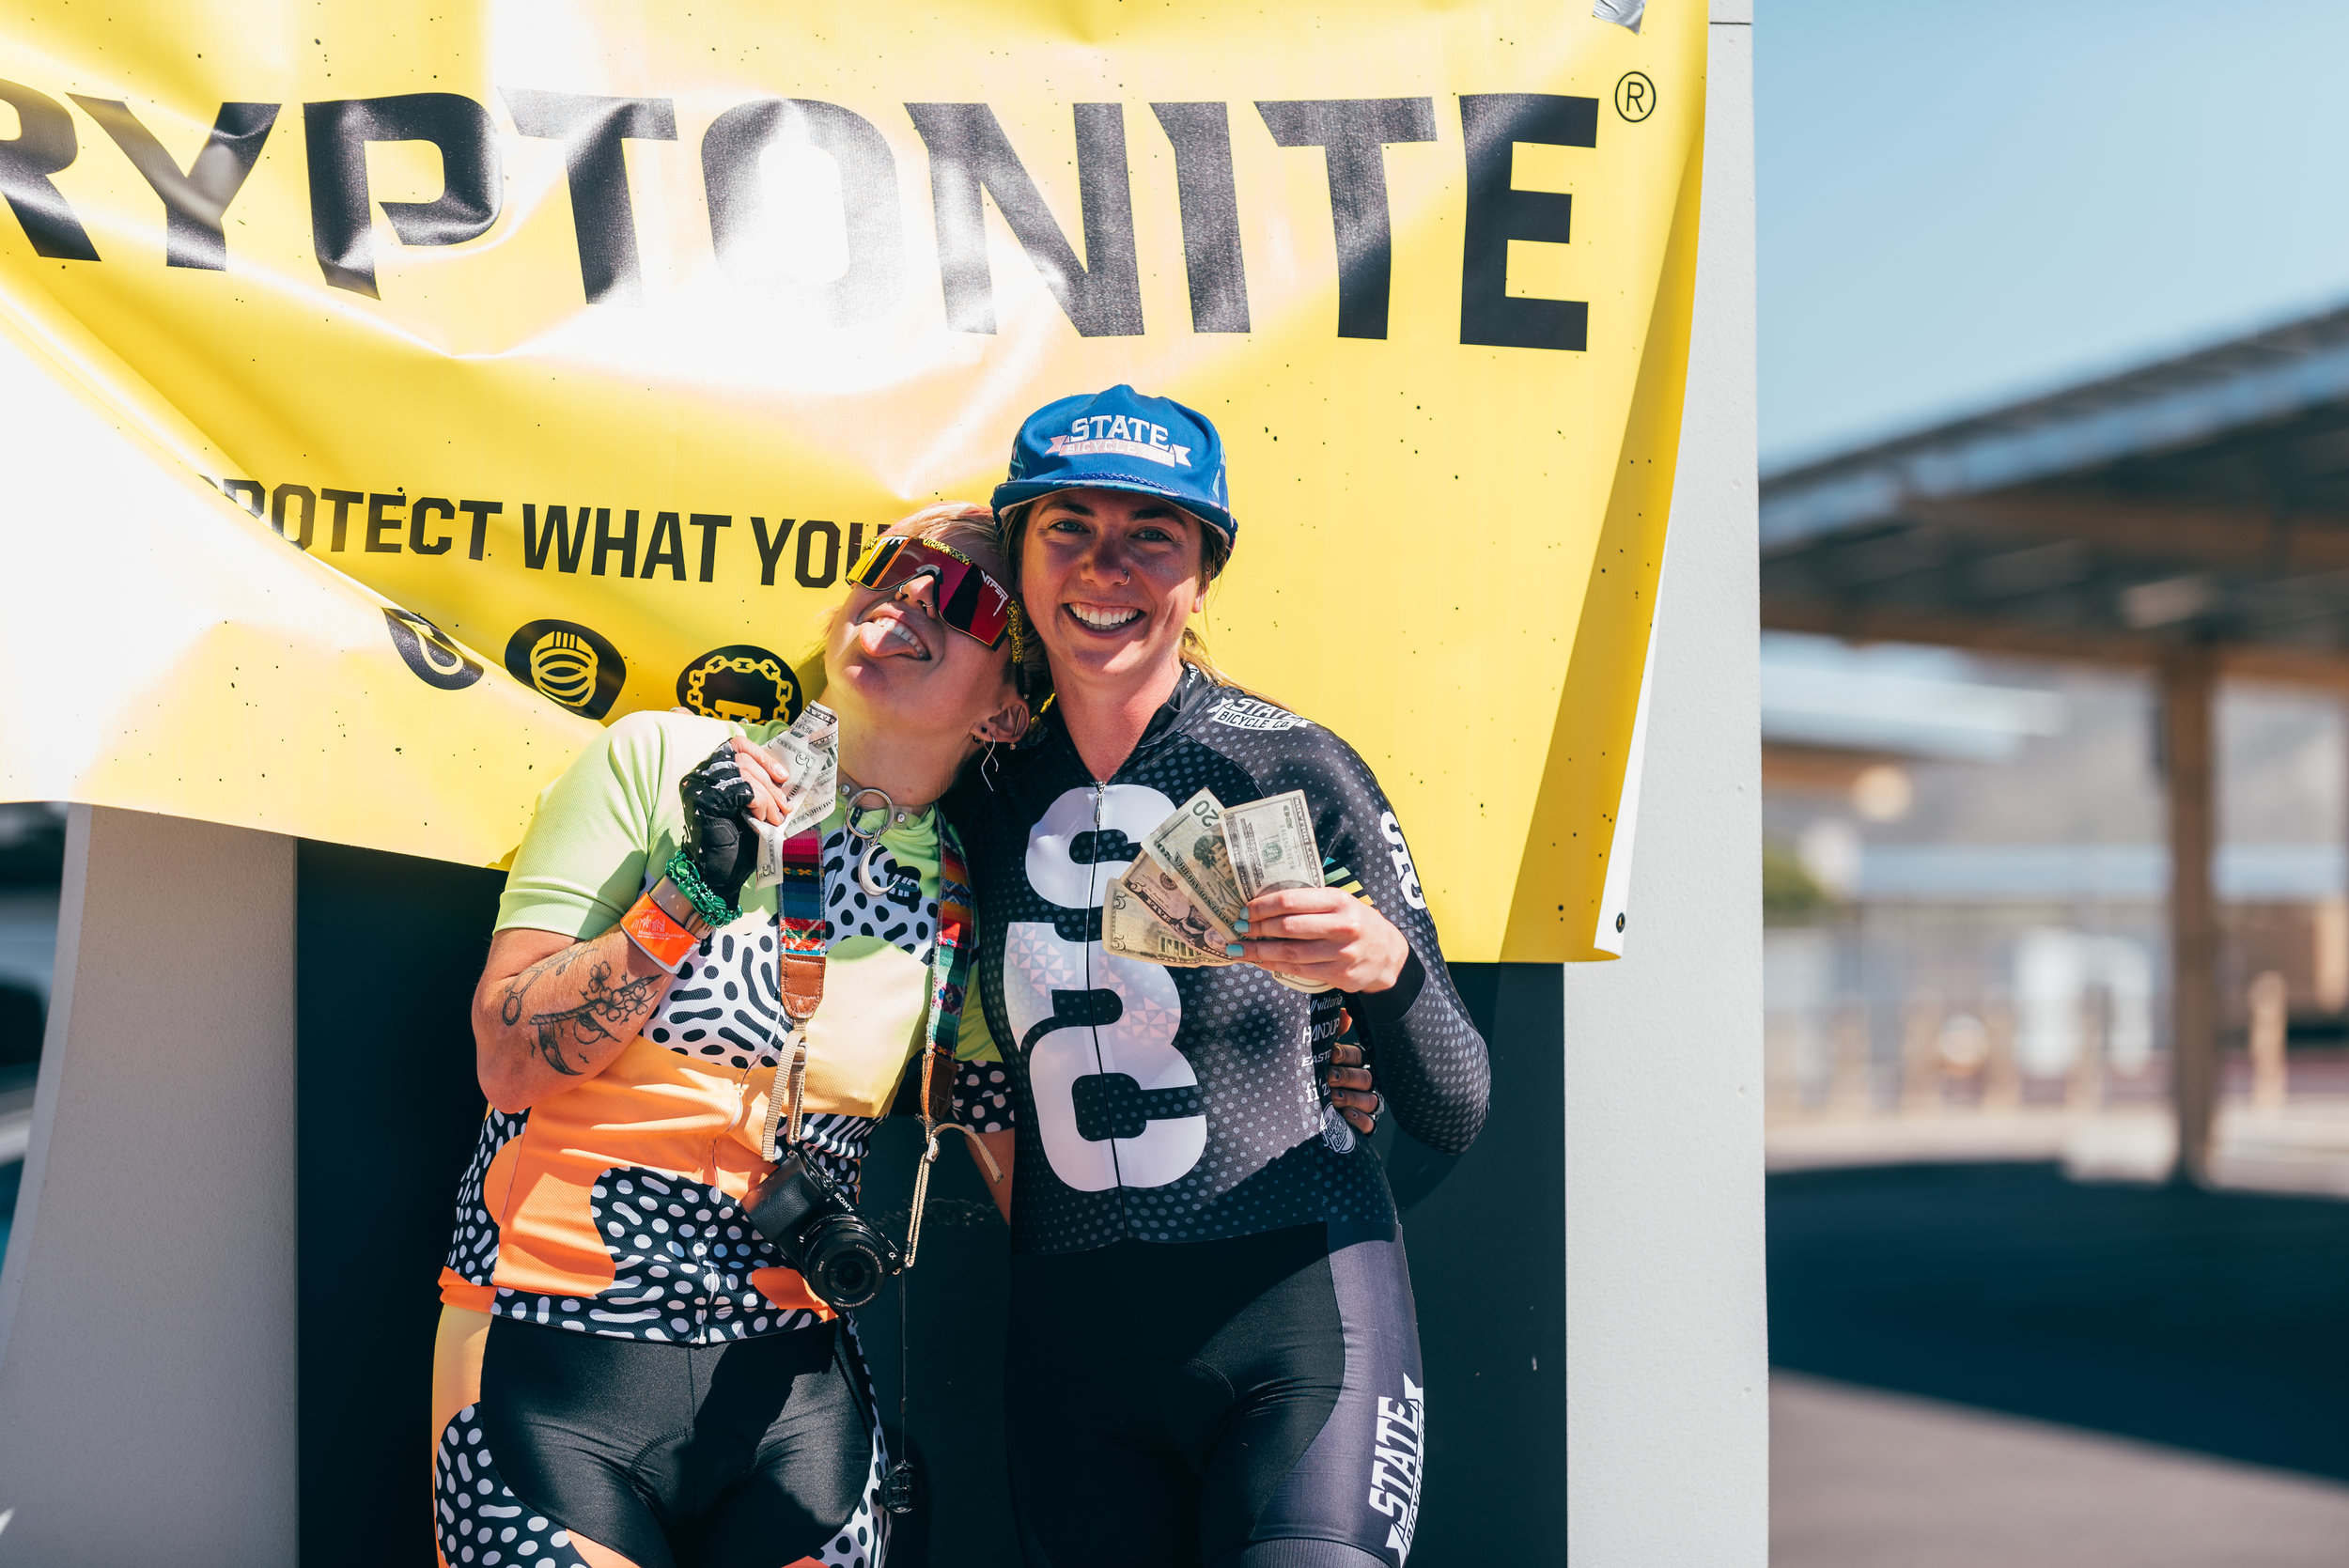 Smaish from Team Nonstop in Arizona recaps her longest alleycat ever.